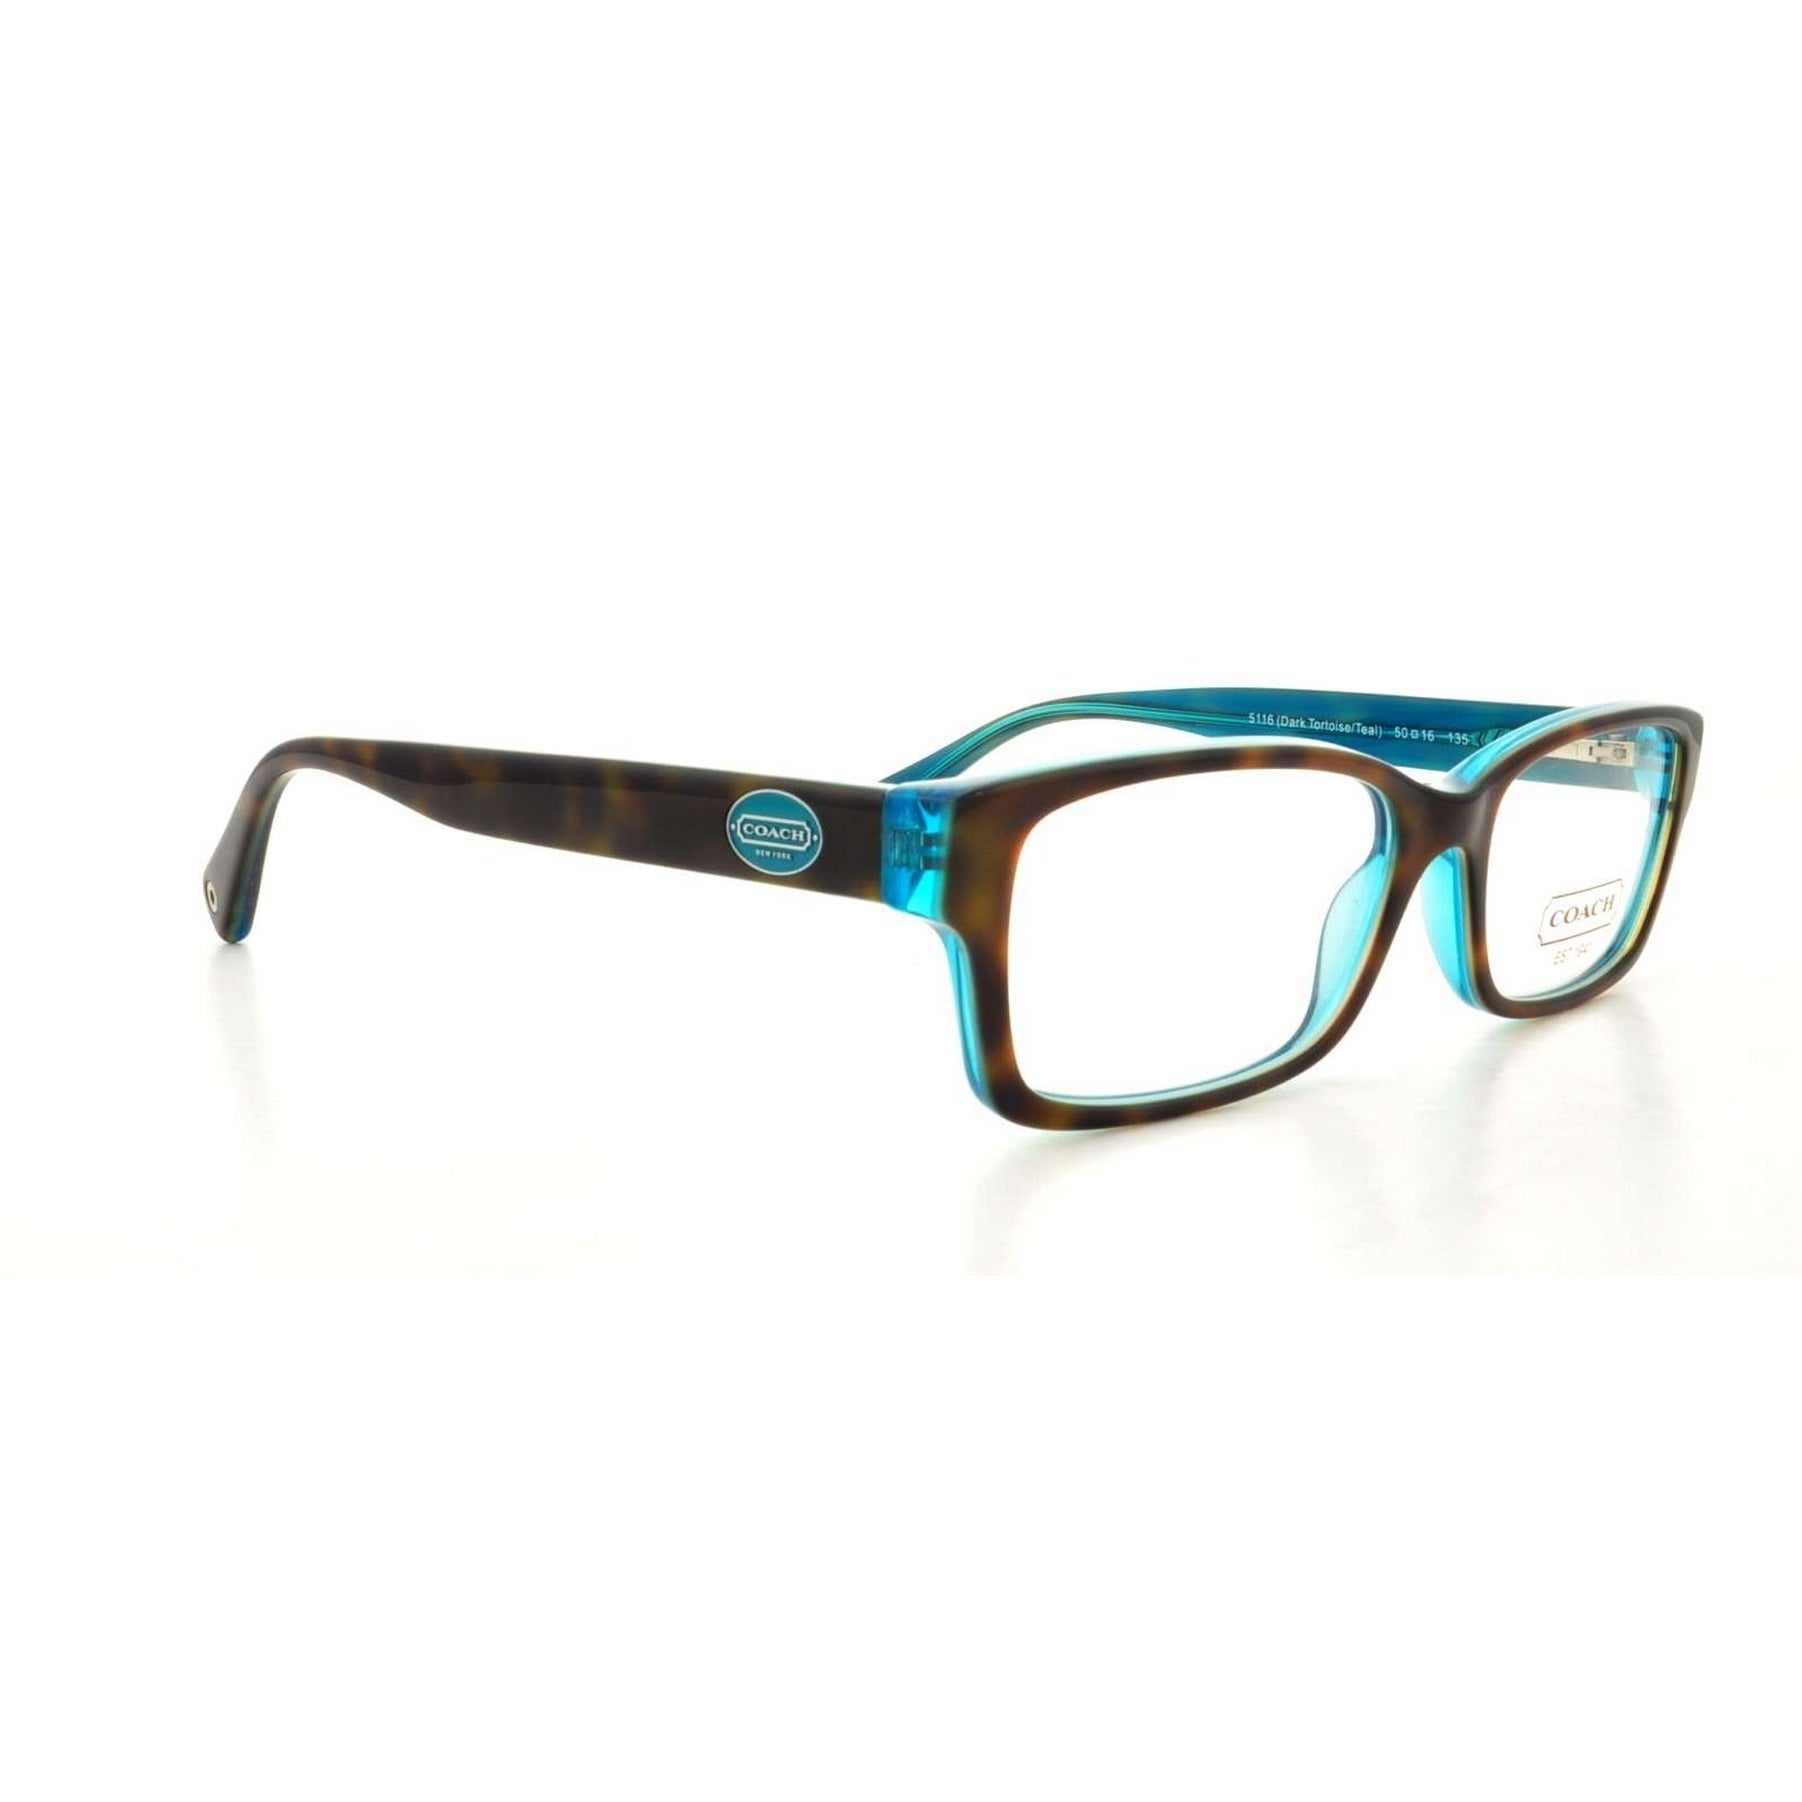 2c70261bb012 Rectangle Coach Eyeglasses | Find Great Accessories Deals Shopping at  Overstock